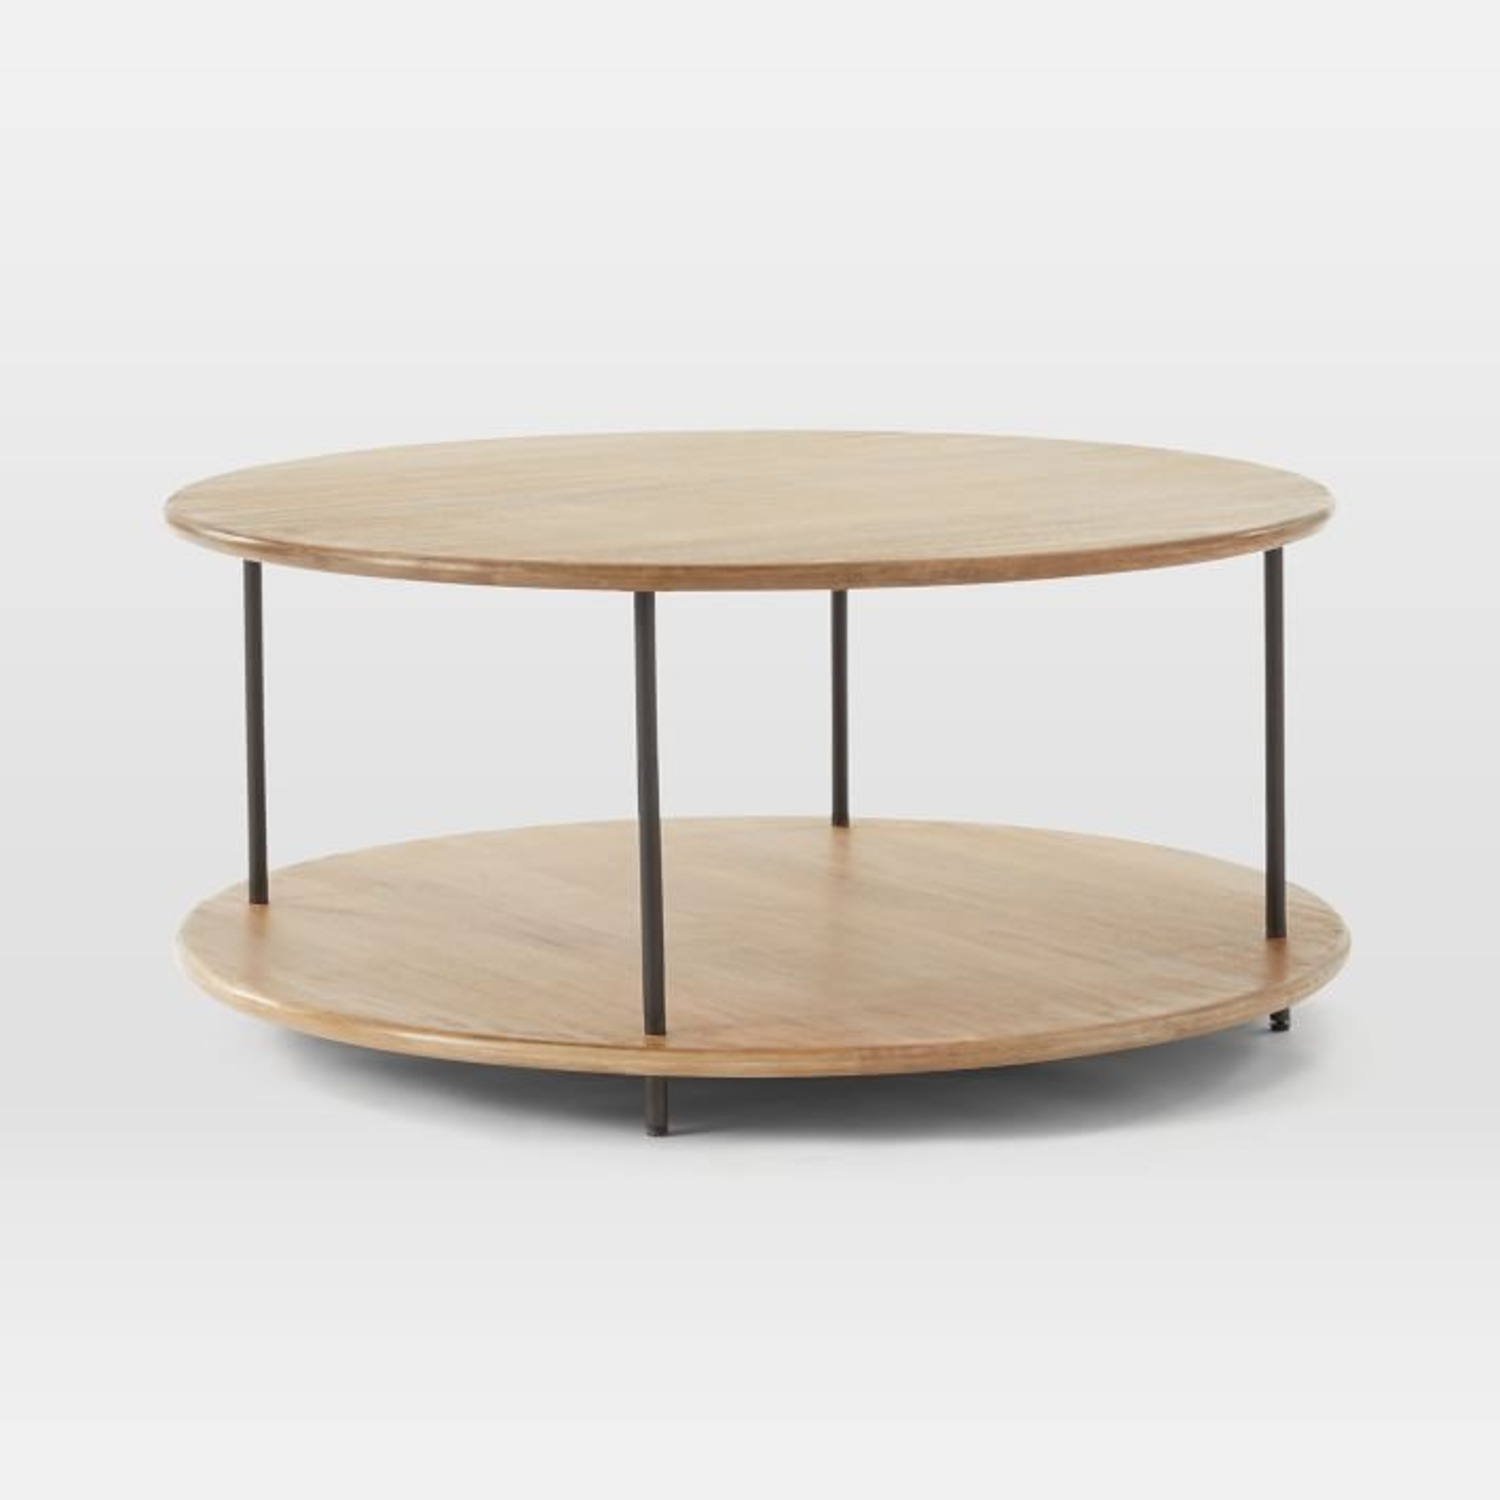 West Elm Tiered Wood Coffee Table - image-1